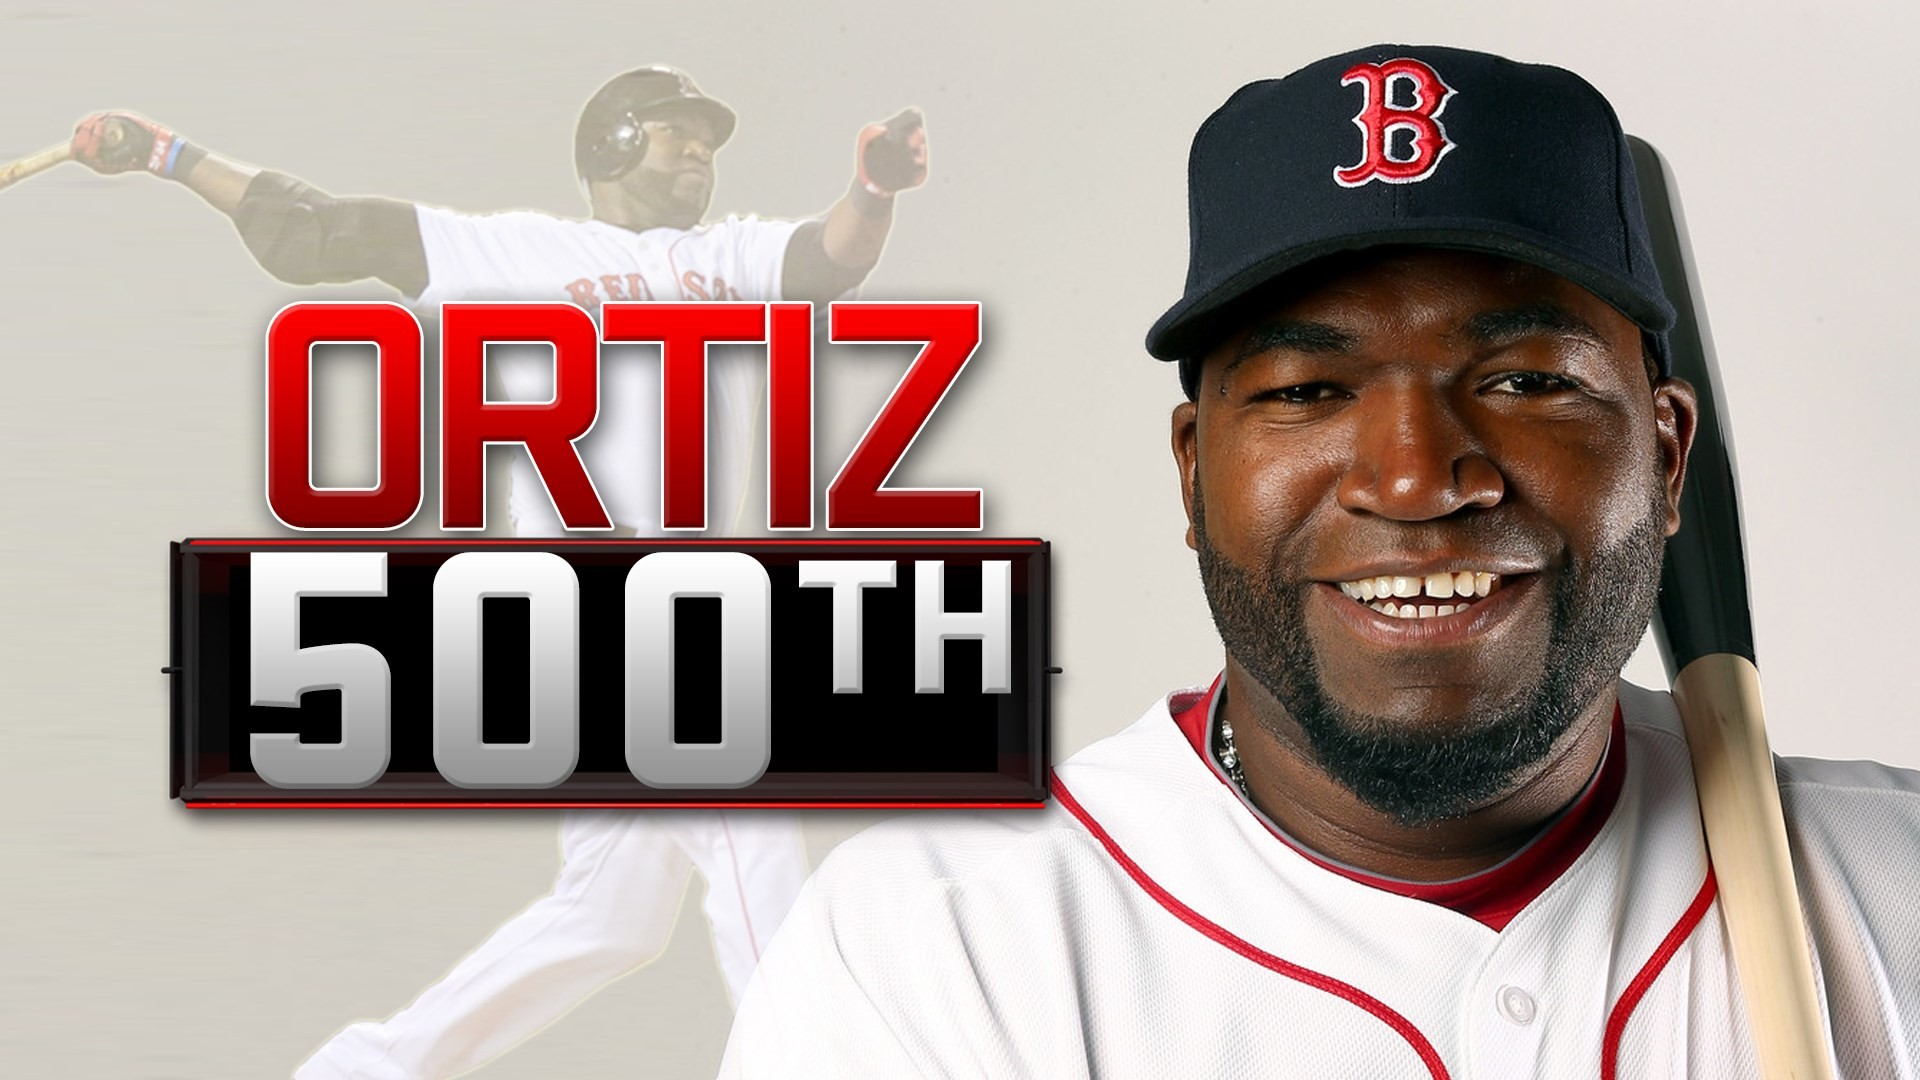 David ortiz family pictures Beauty and Fashion Tips and Advice Real Simple